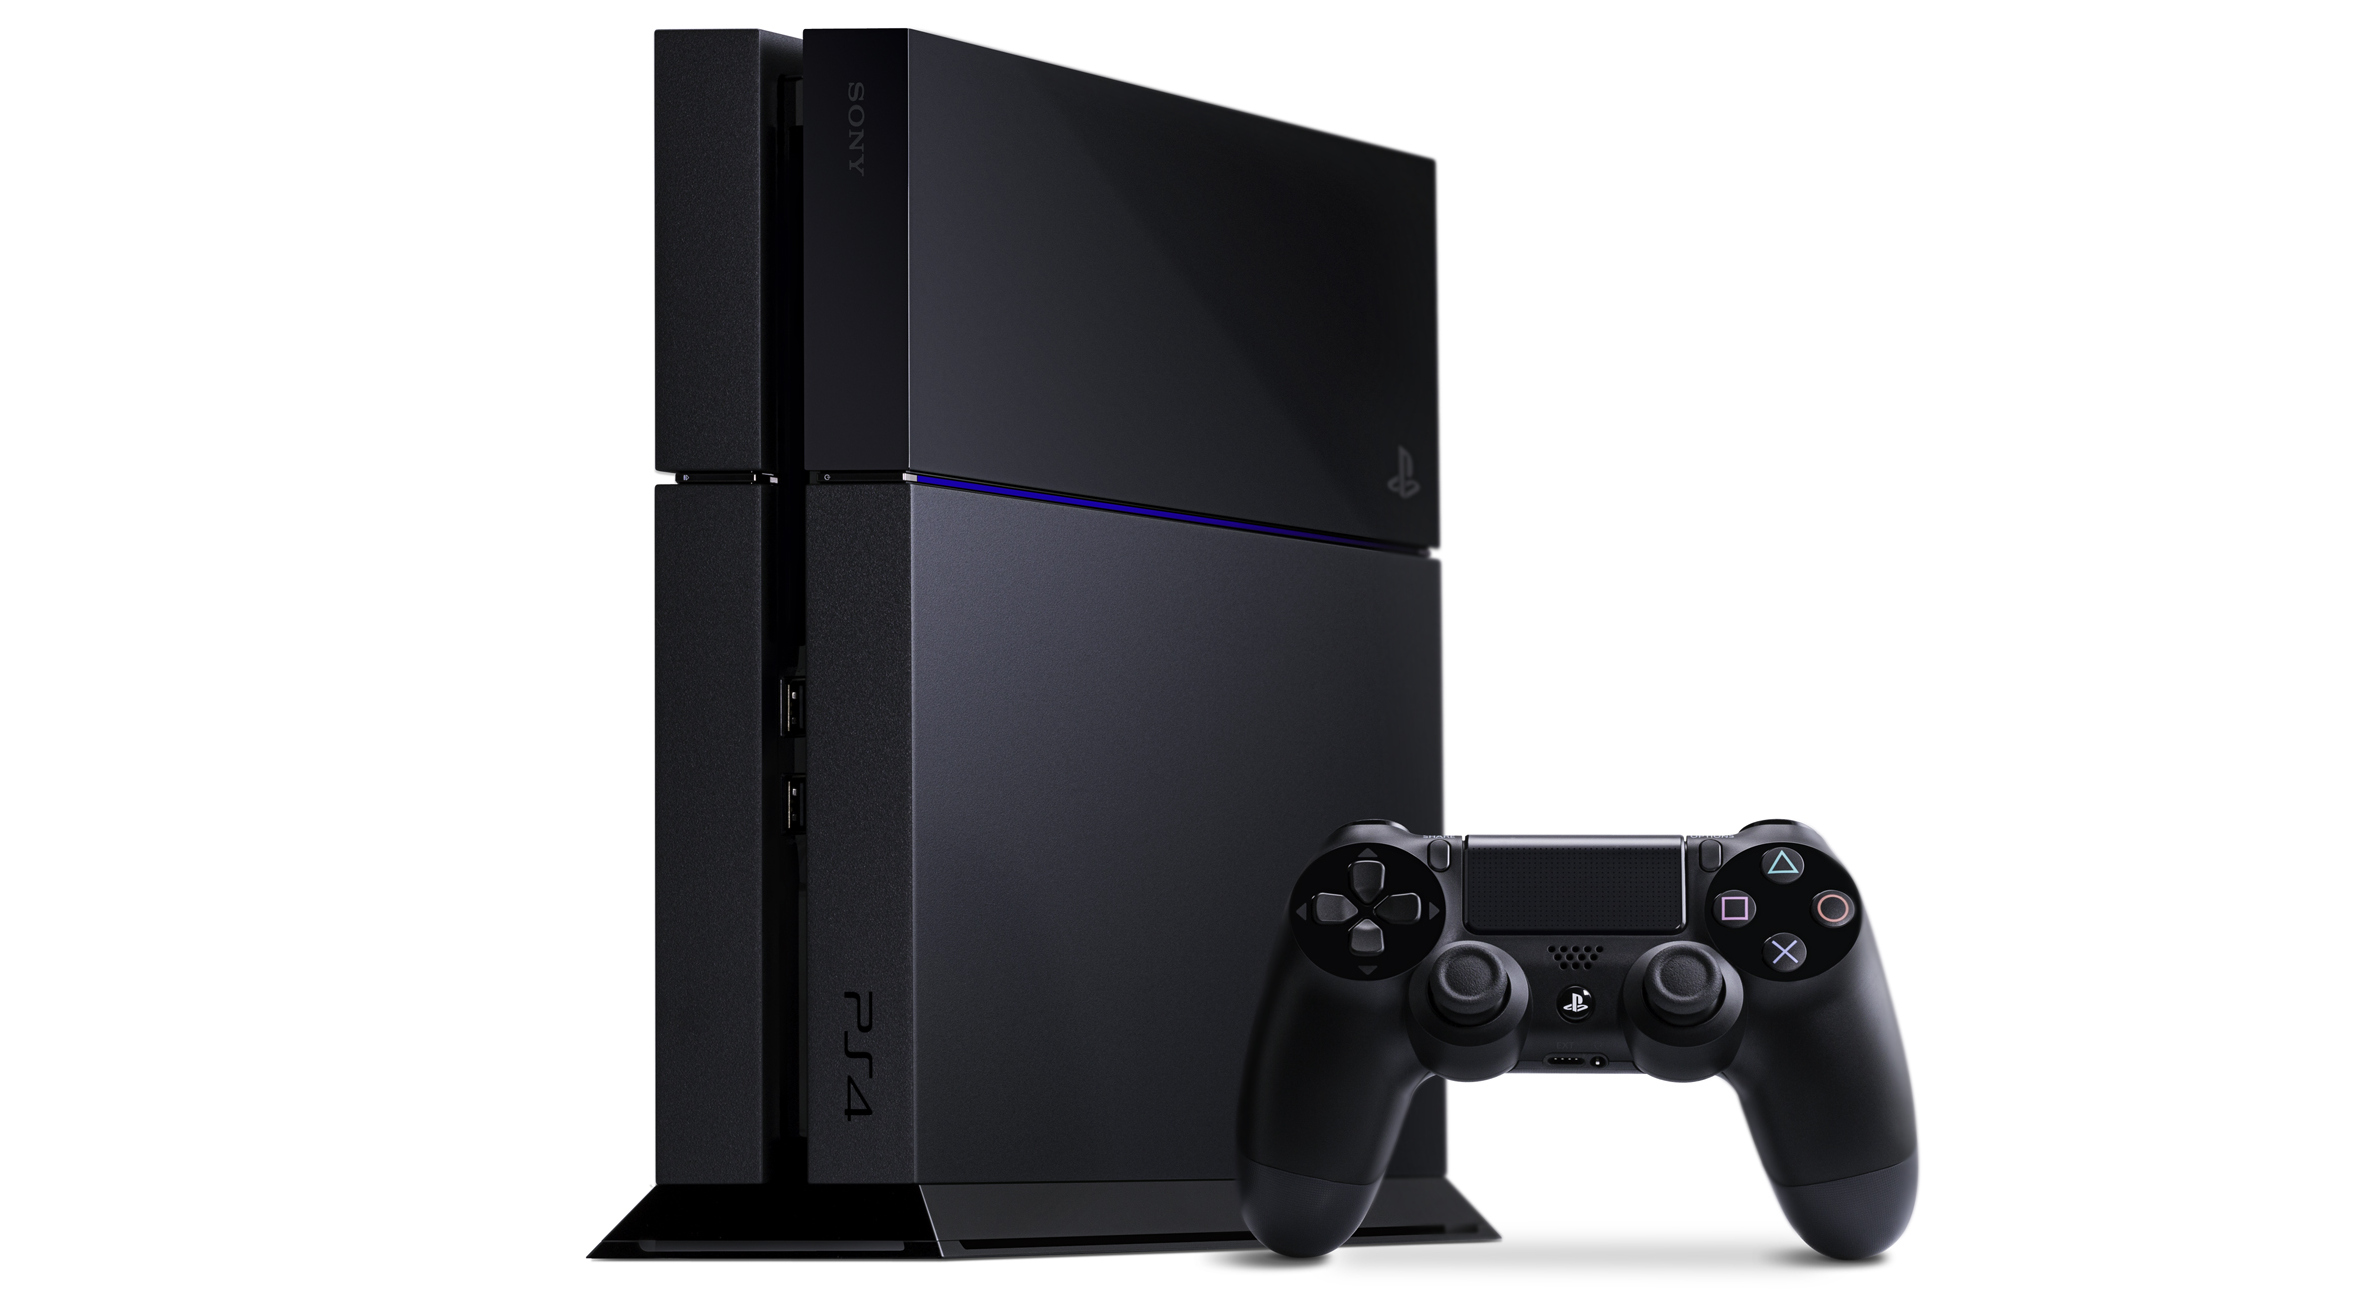 The PlayStation 4: The Kotaku Review (In Progress)